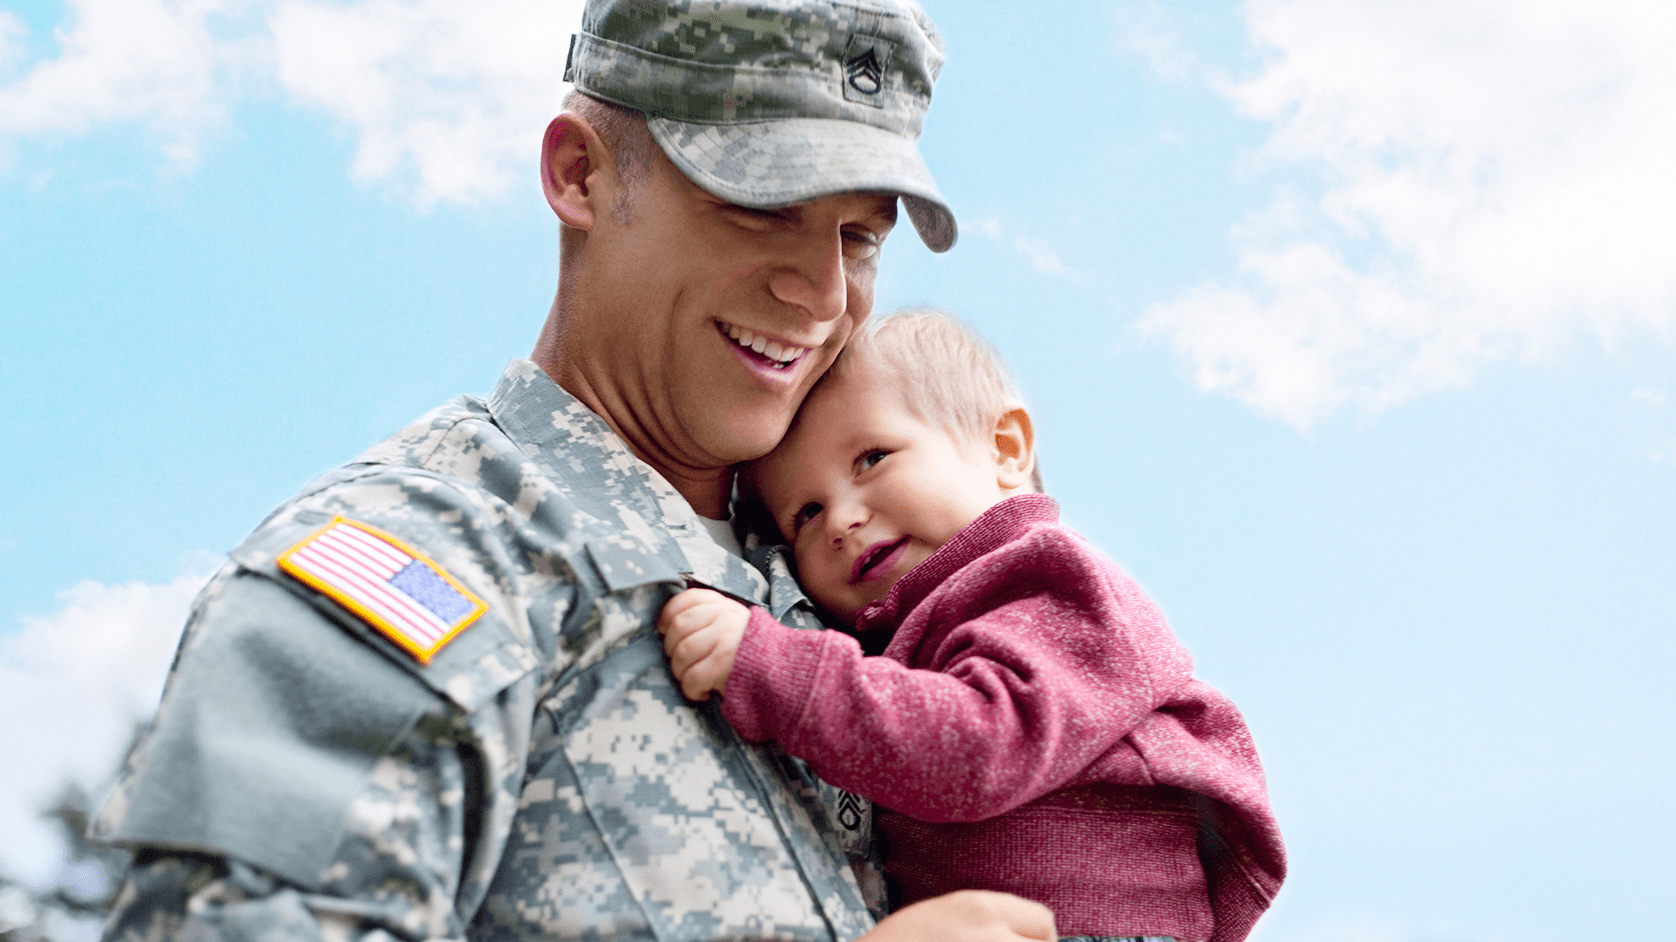 U.S. service member smiling and holding his daughter.